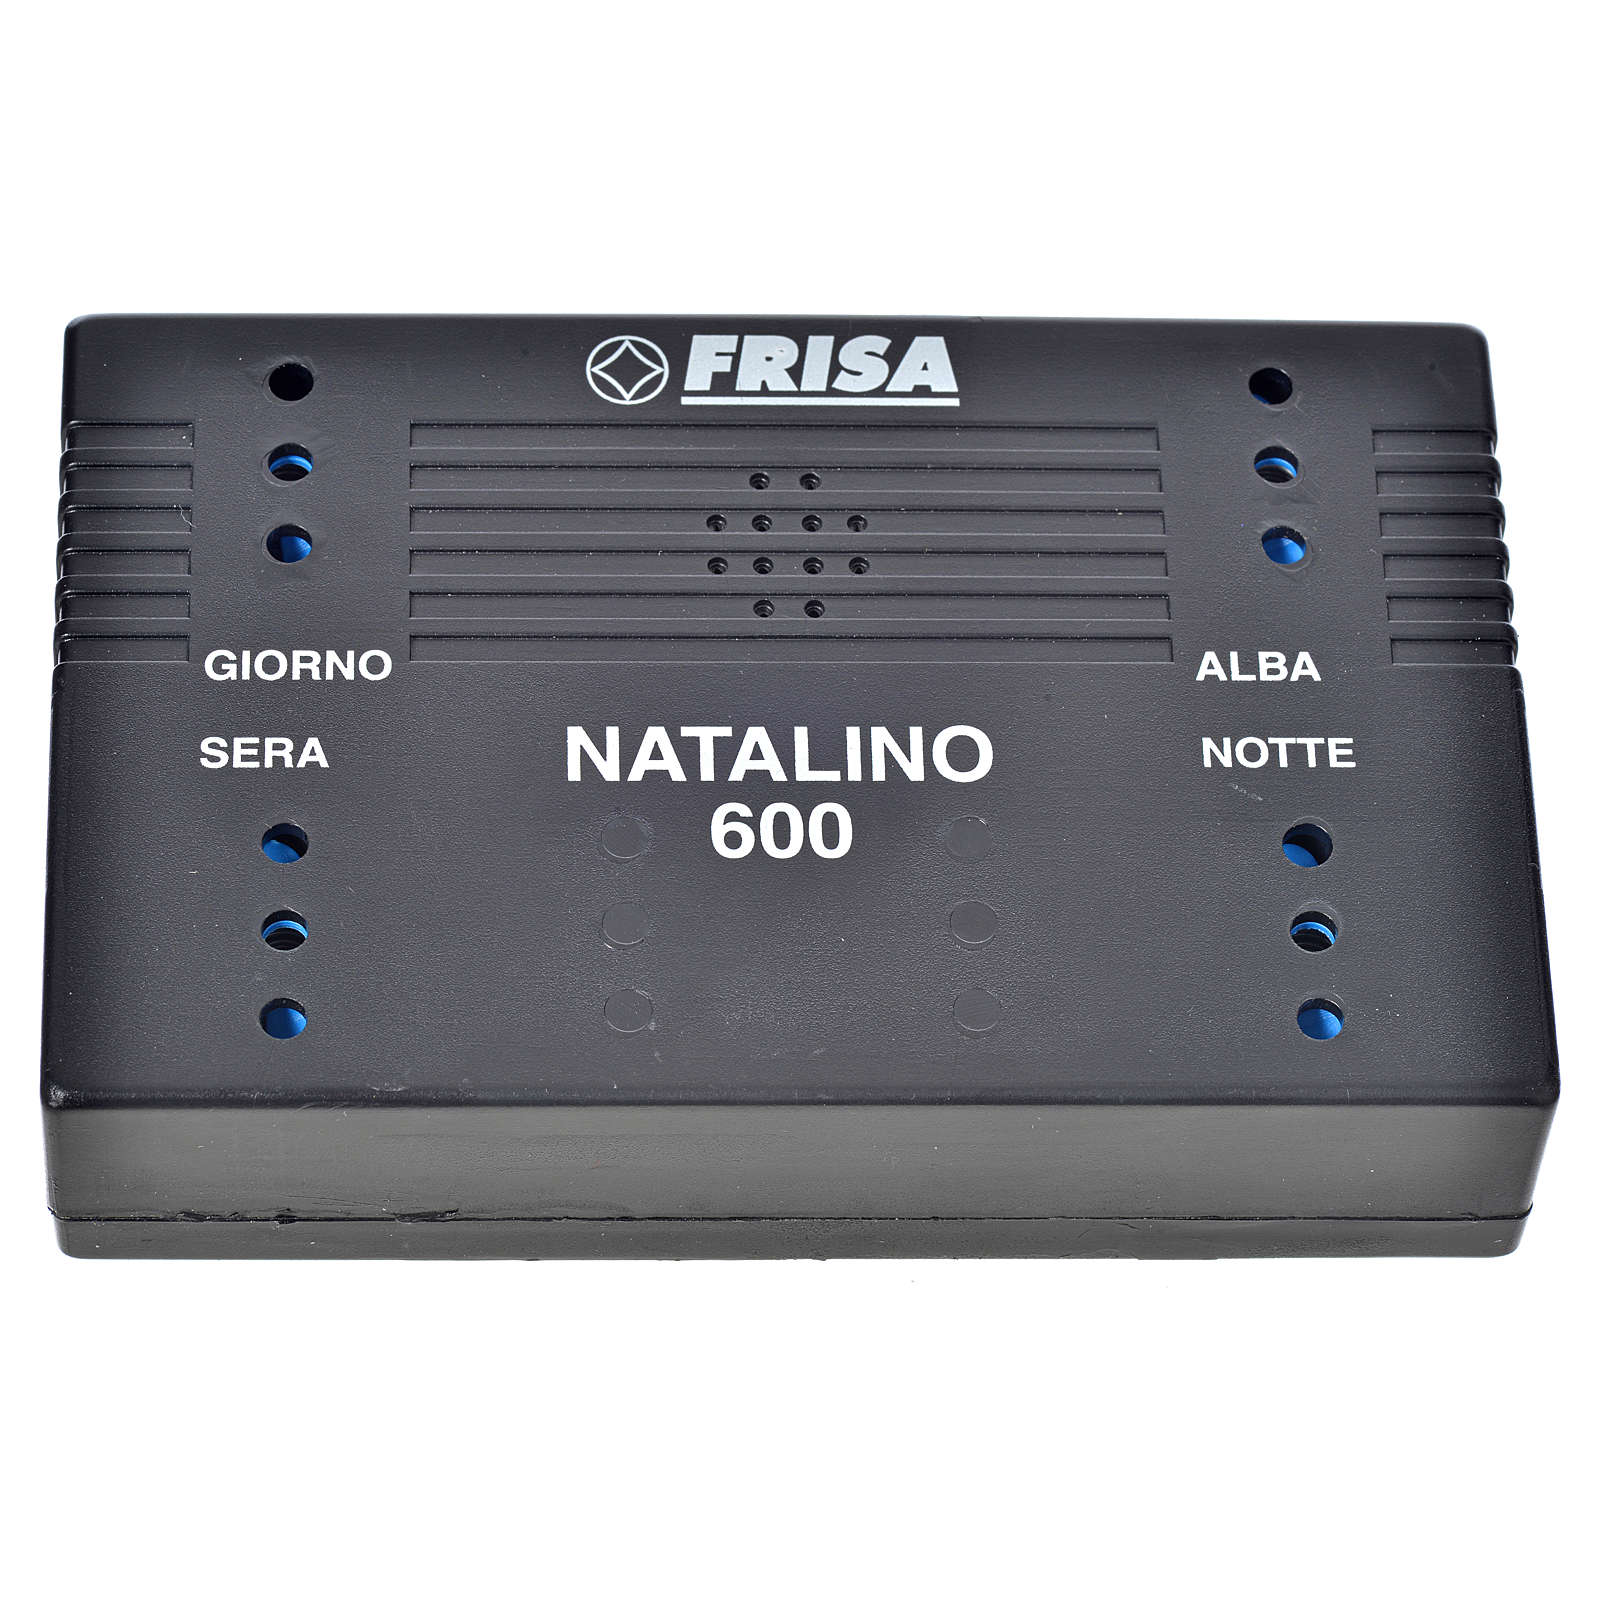 Natalino N600, day/night fading 4